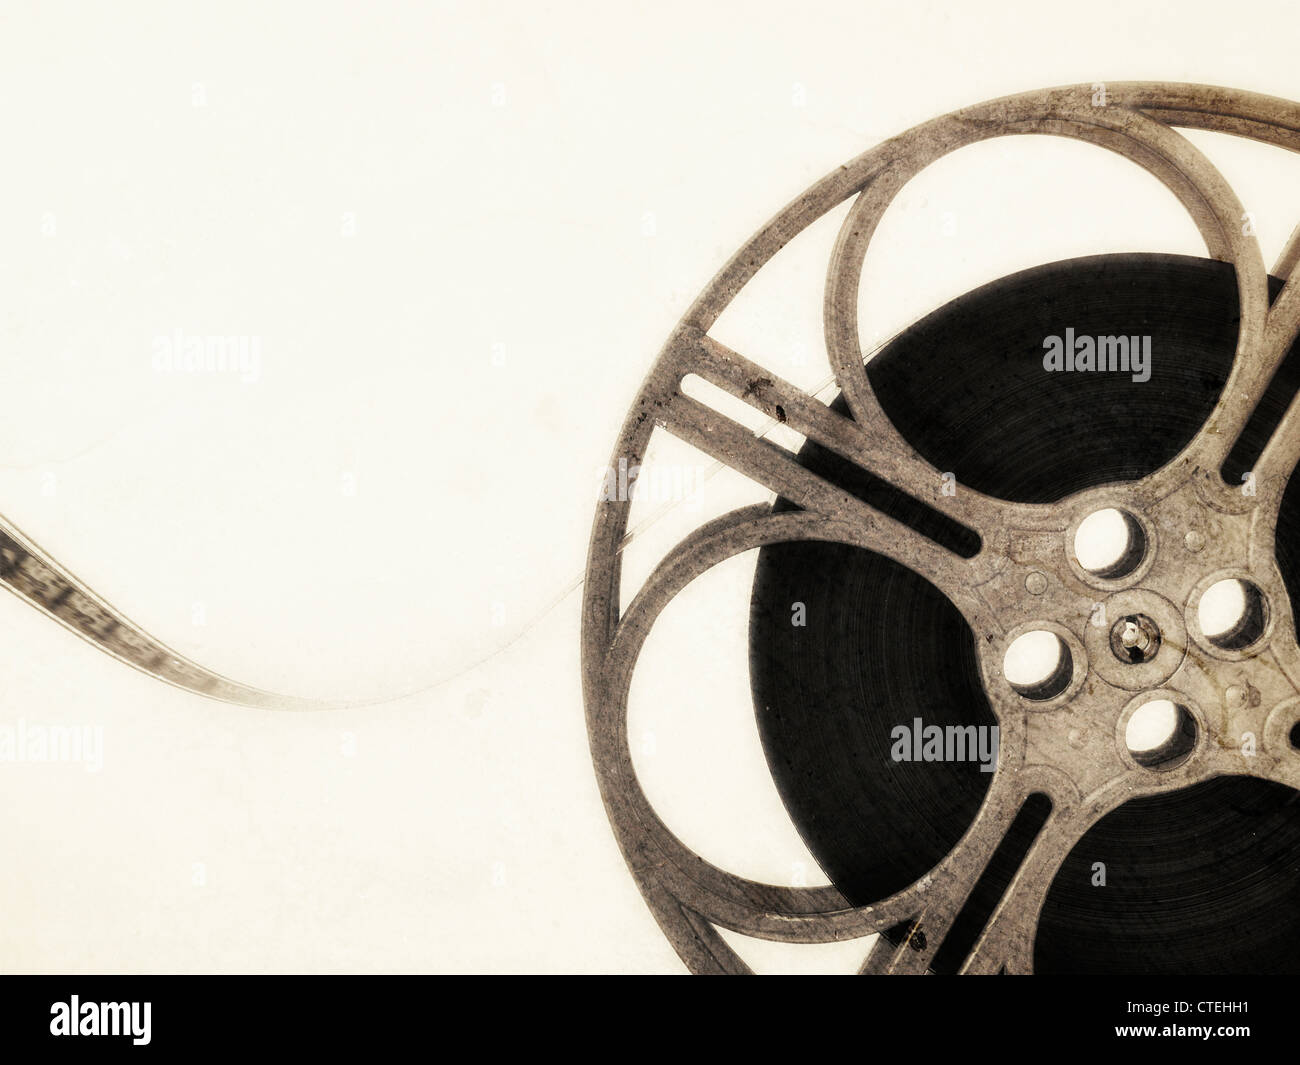 Film reel - Stock Image